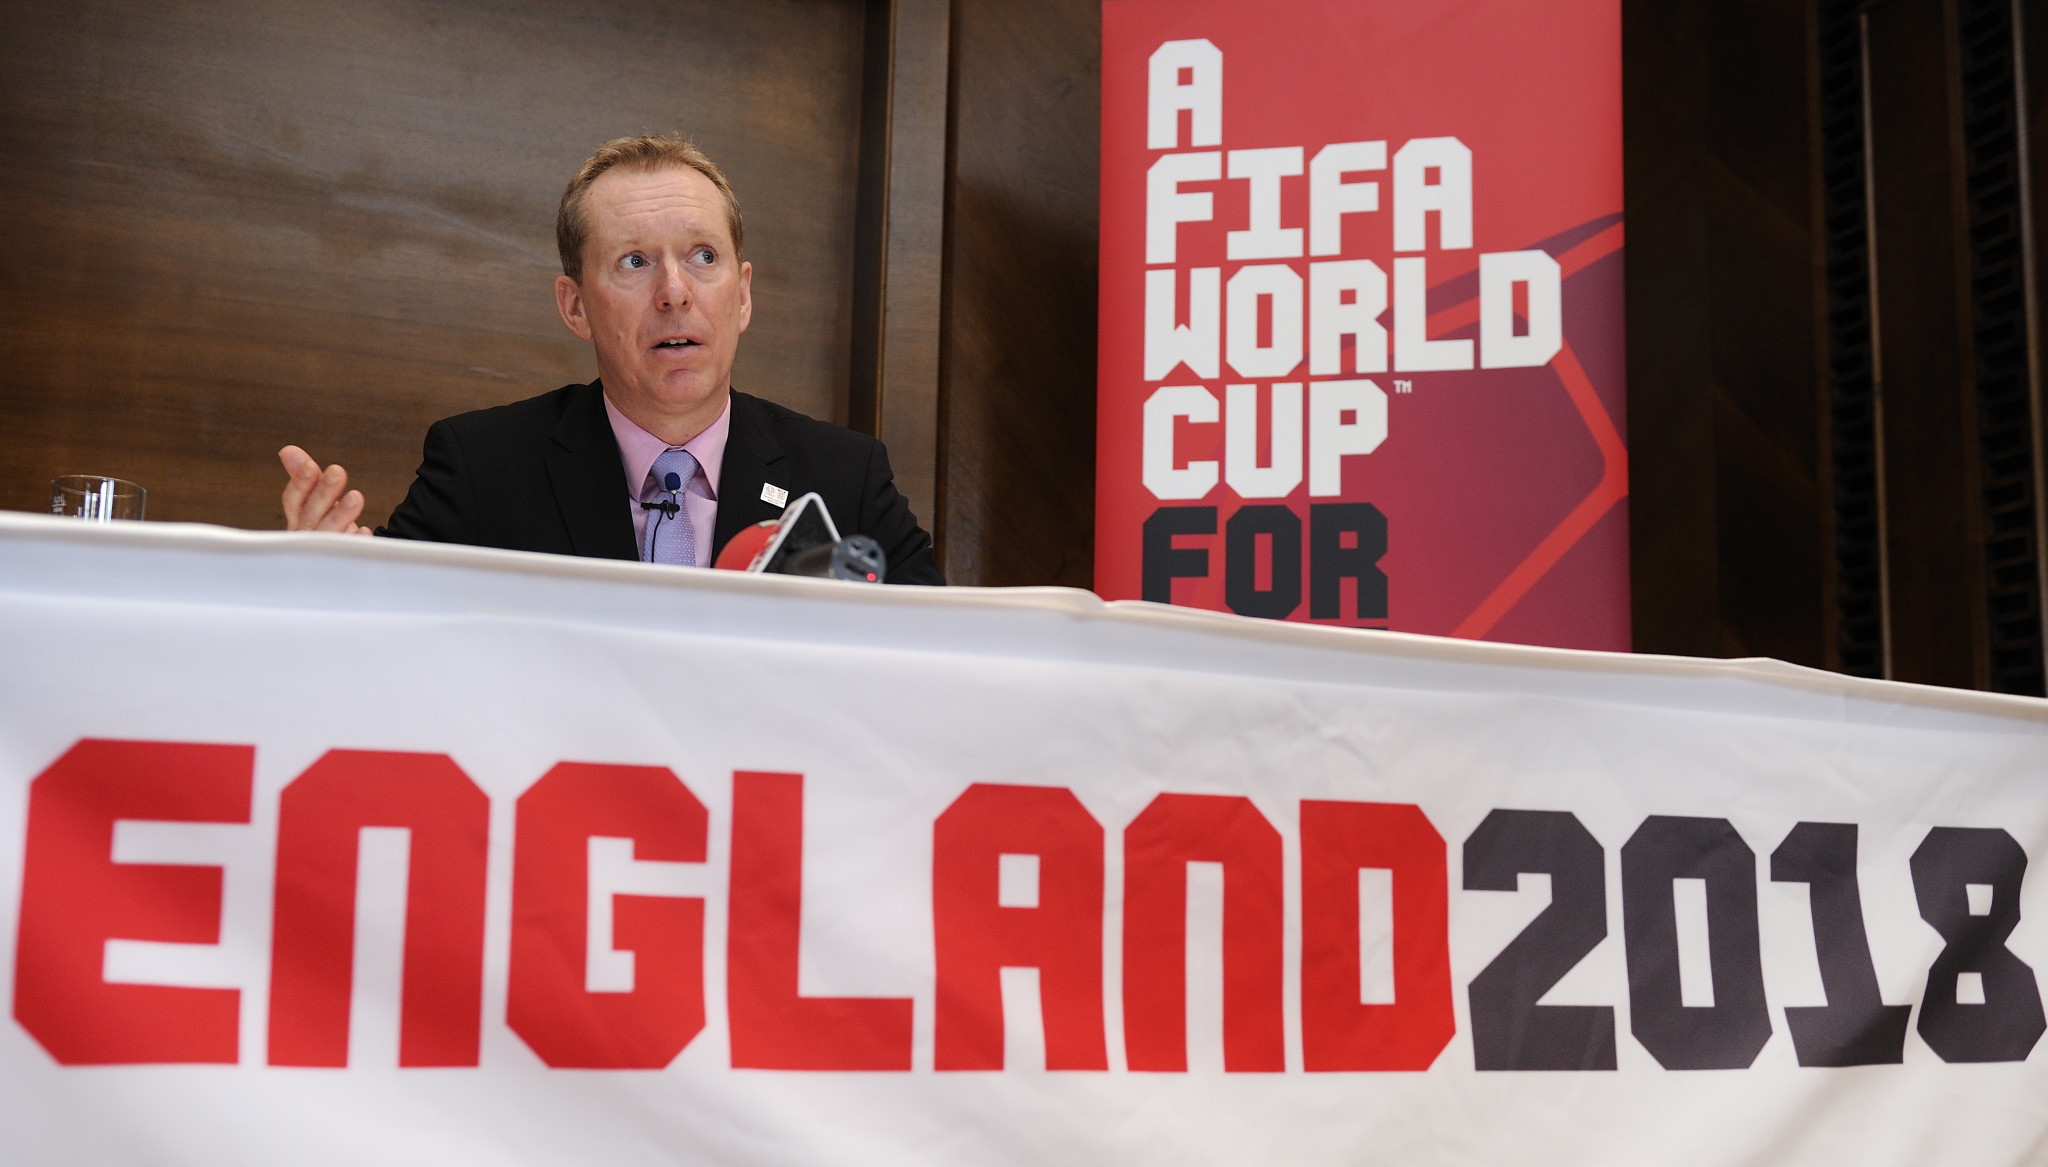 Andy Anson was the chief executive of the company behind England's bid to host the 2018 FIFA World Cup ©Getty Images